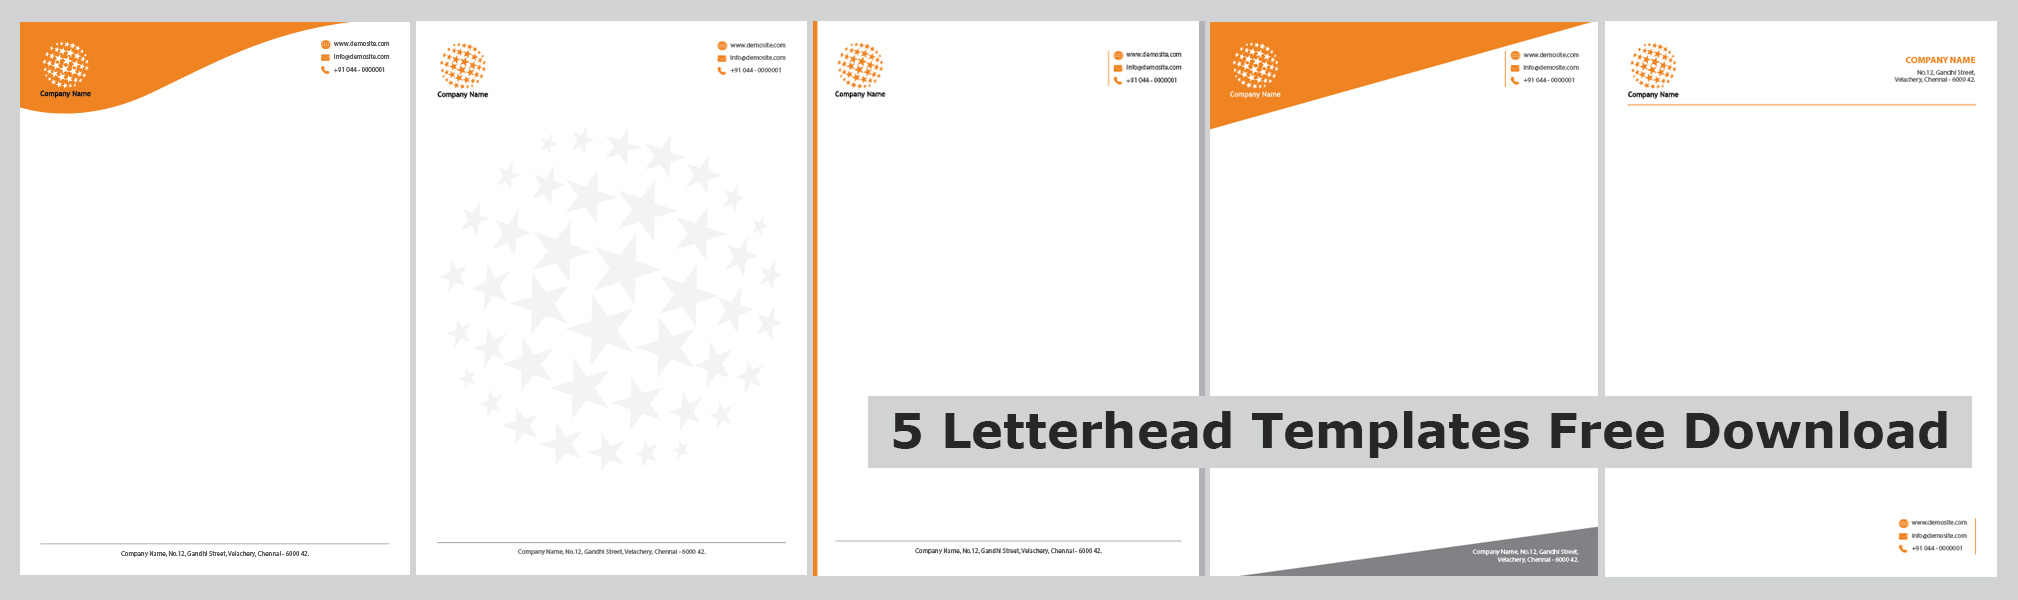 Letterhead Printing Templates Free Download – Letterheads Templates Free Download